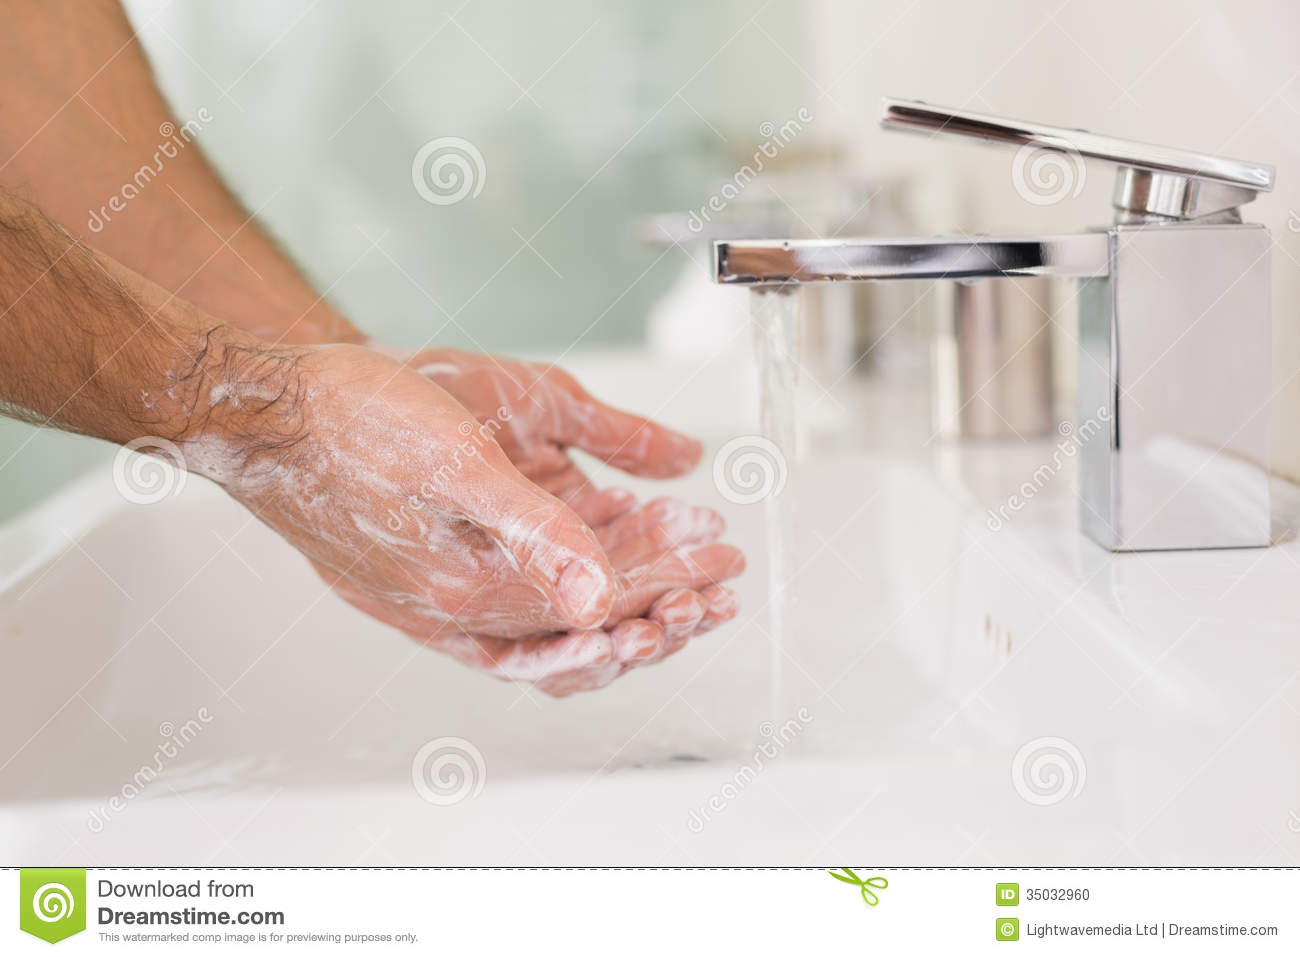 Hand washing soap and water clipart jpg Hand under running water clipart - ClipartFest jpg